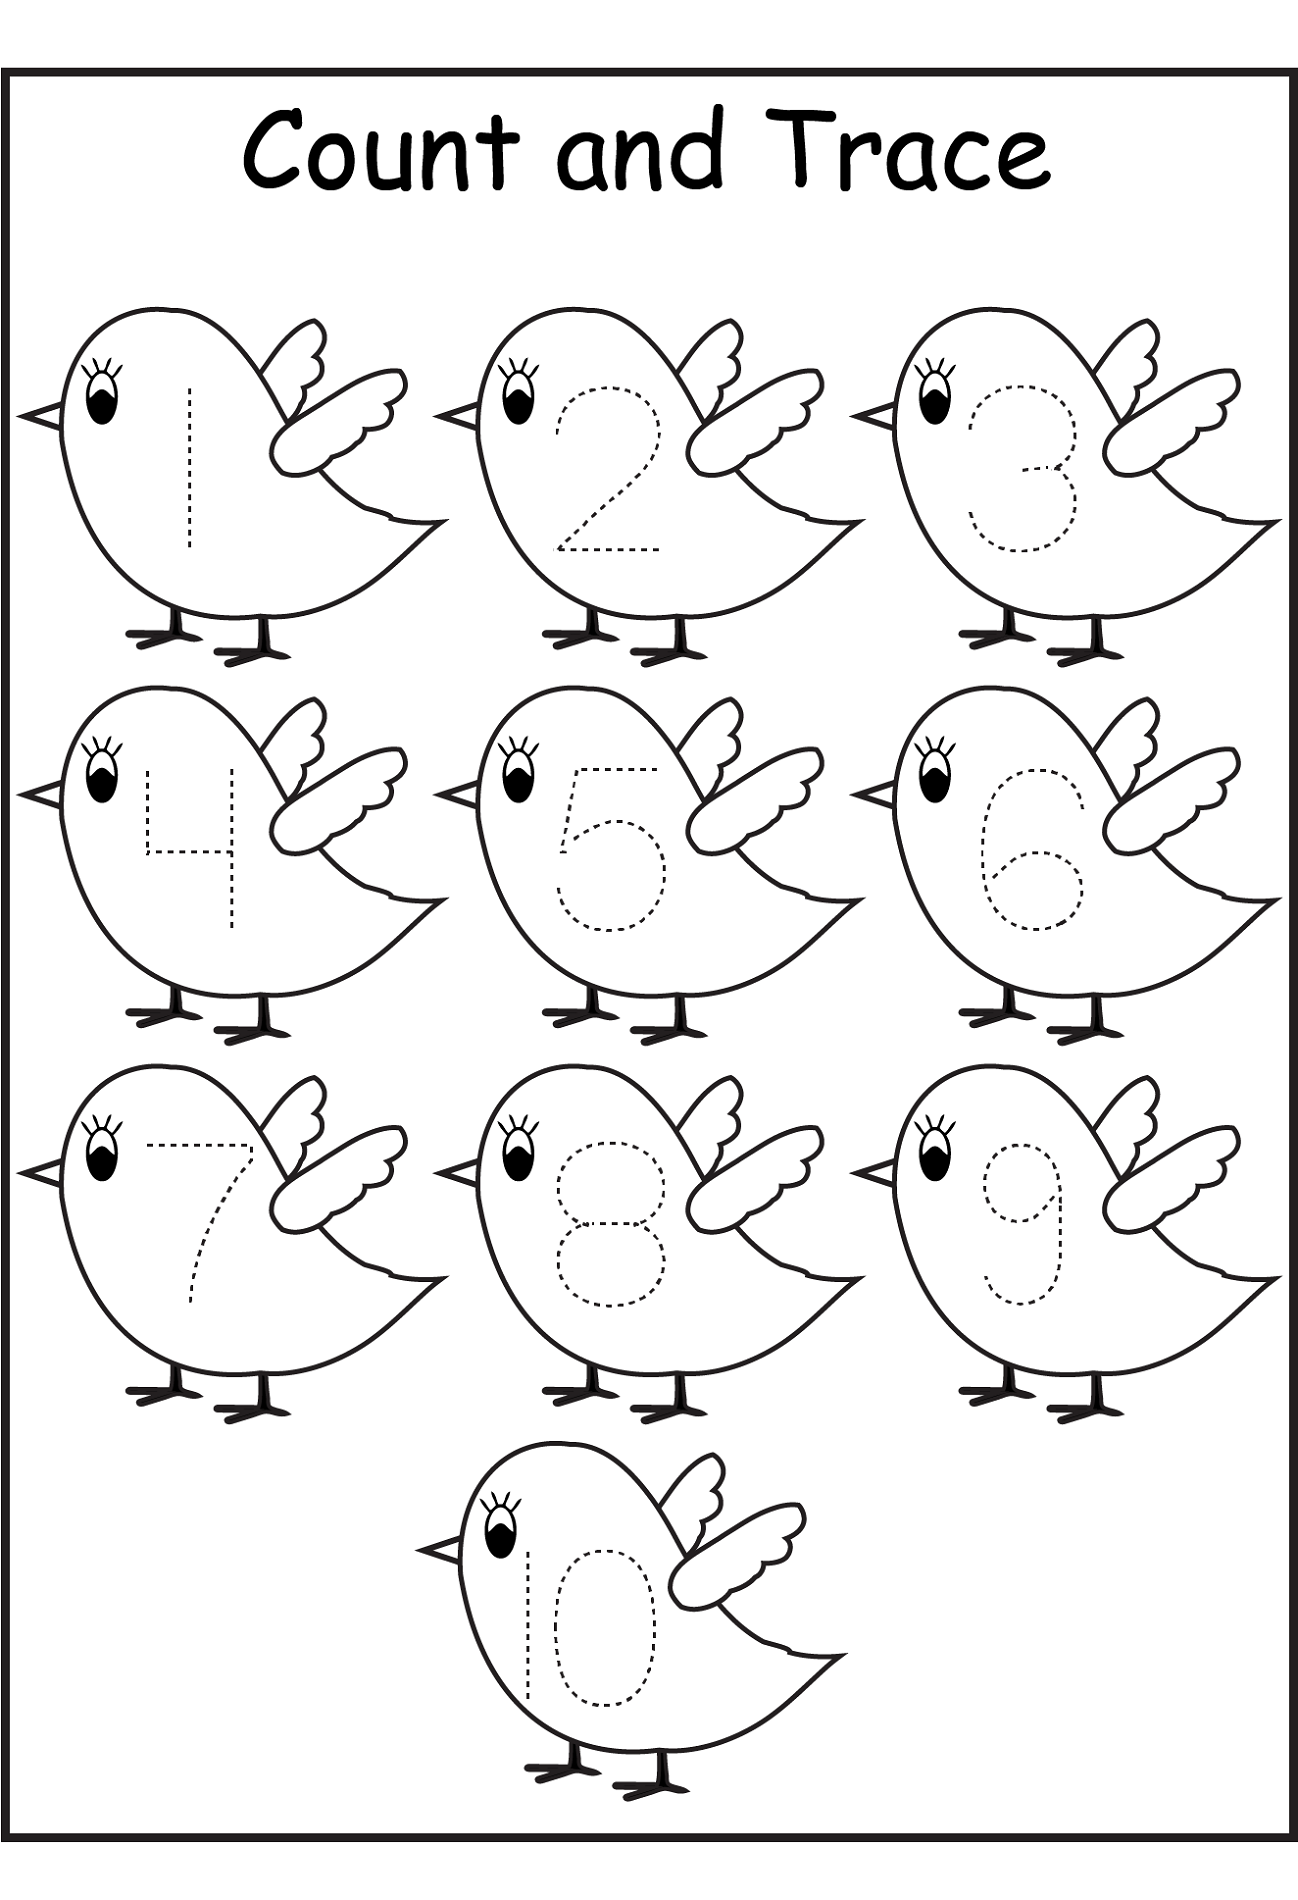 tracing coloring pages - photo#27